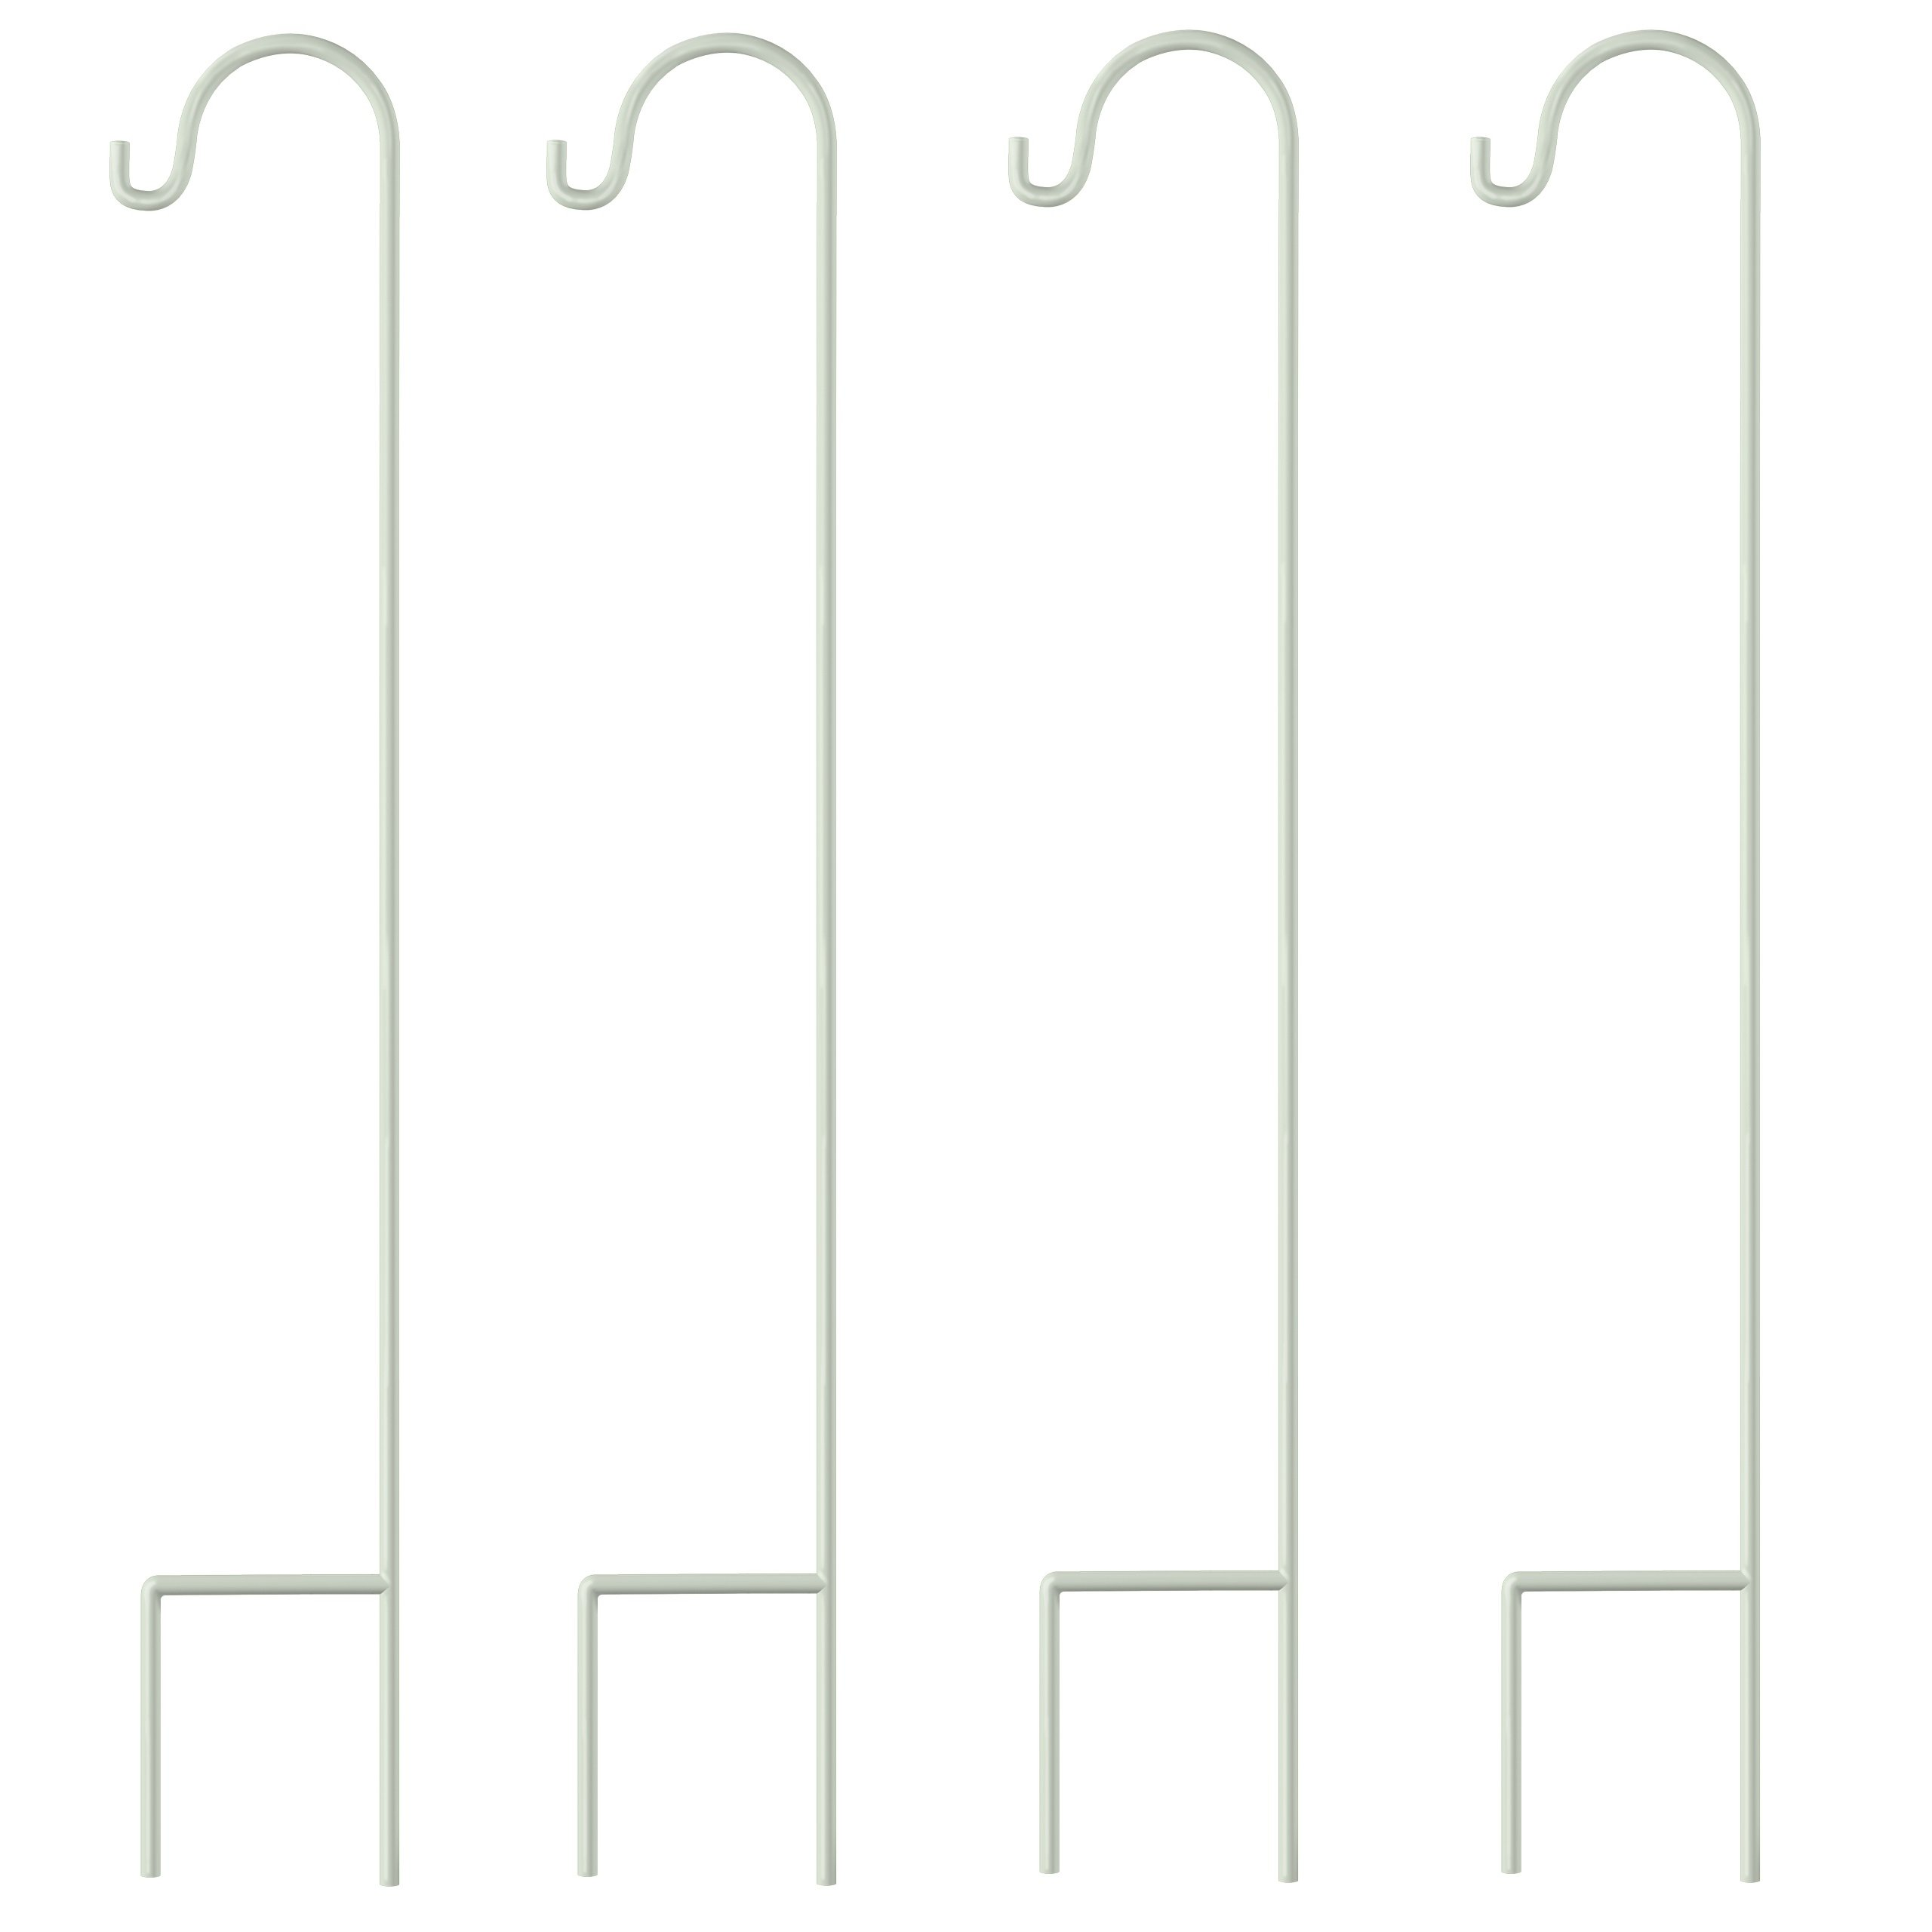 GrayBunny Shepherd Hook, 35 inch White, Set of 4 Solid (Non-Hollow) Single Piece (No Assembly), Strong Rust Resistant Premium Metal Hanger For Weddings Plant Baskets Solar Lights Lanterns & Mason Jars